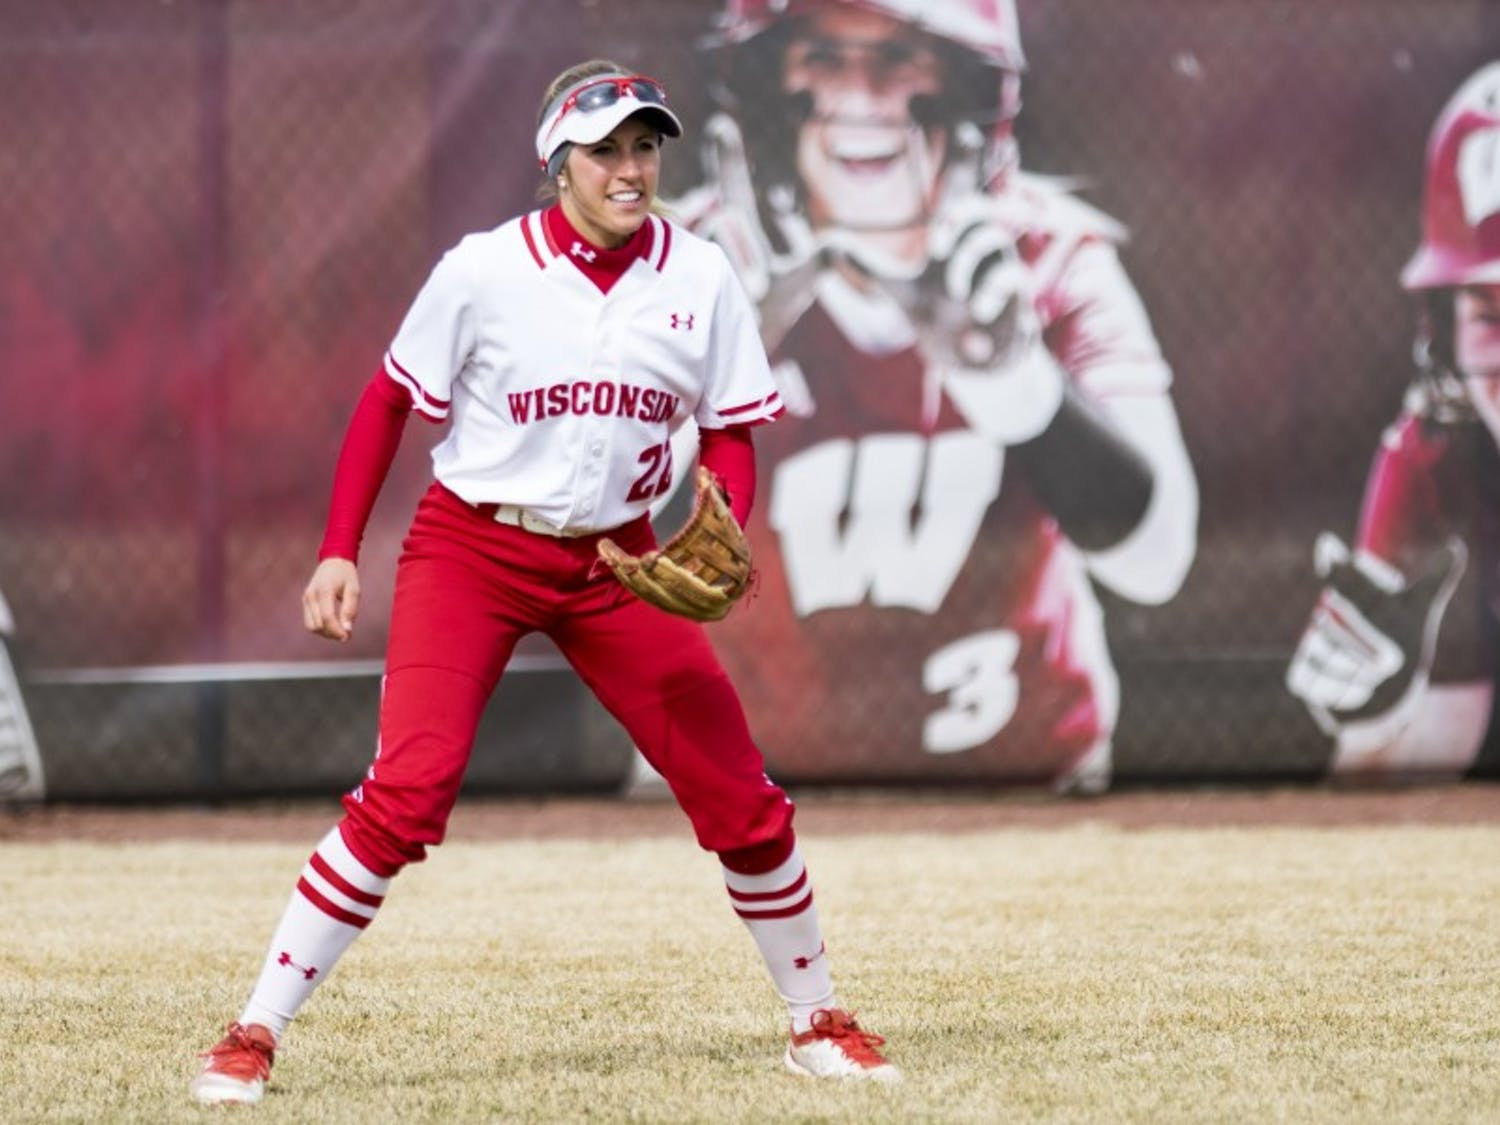 Gabby Scherle, who grew up on a farm in Iowa, now majors in agricultural business management at Wisconsin.